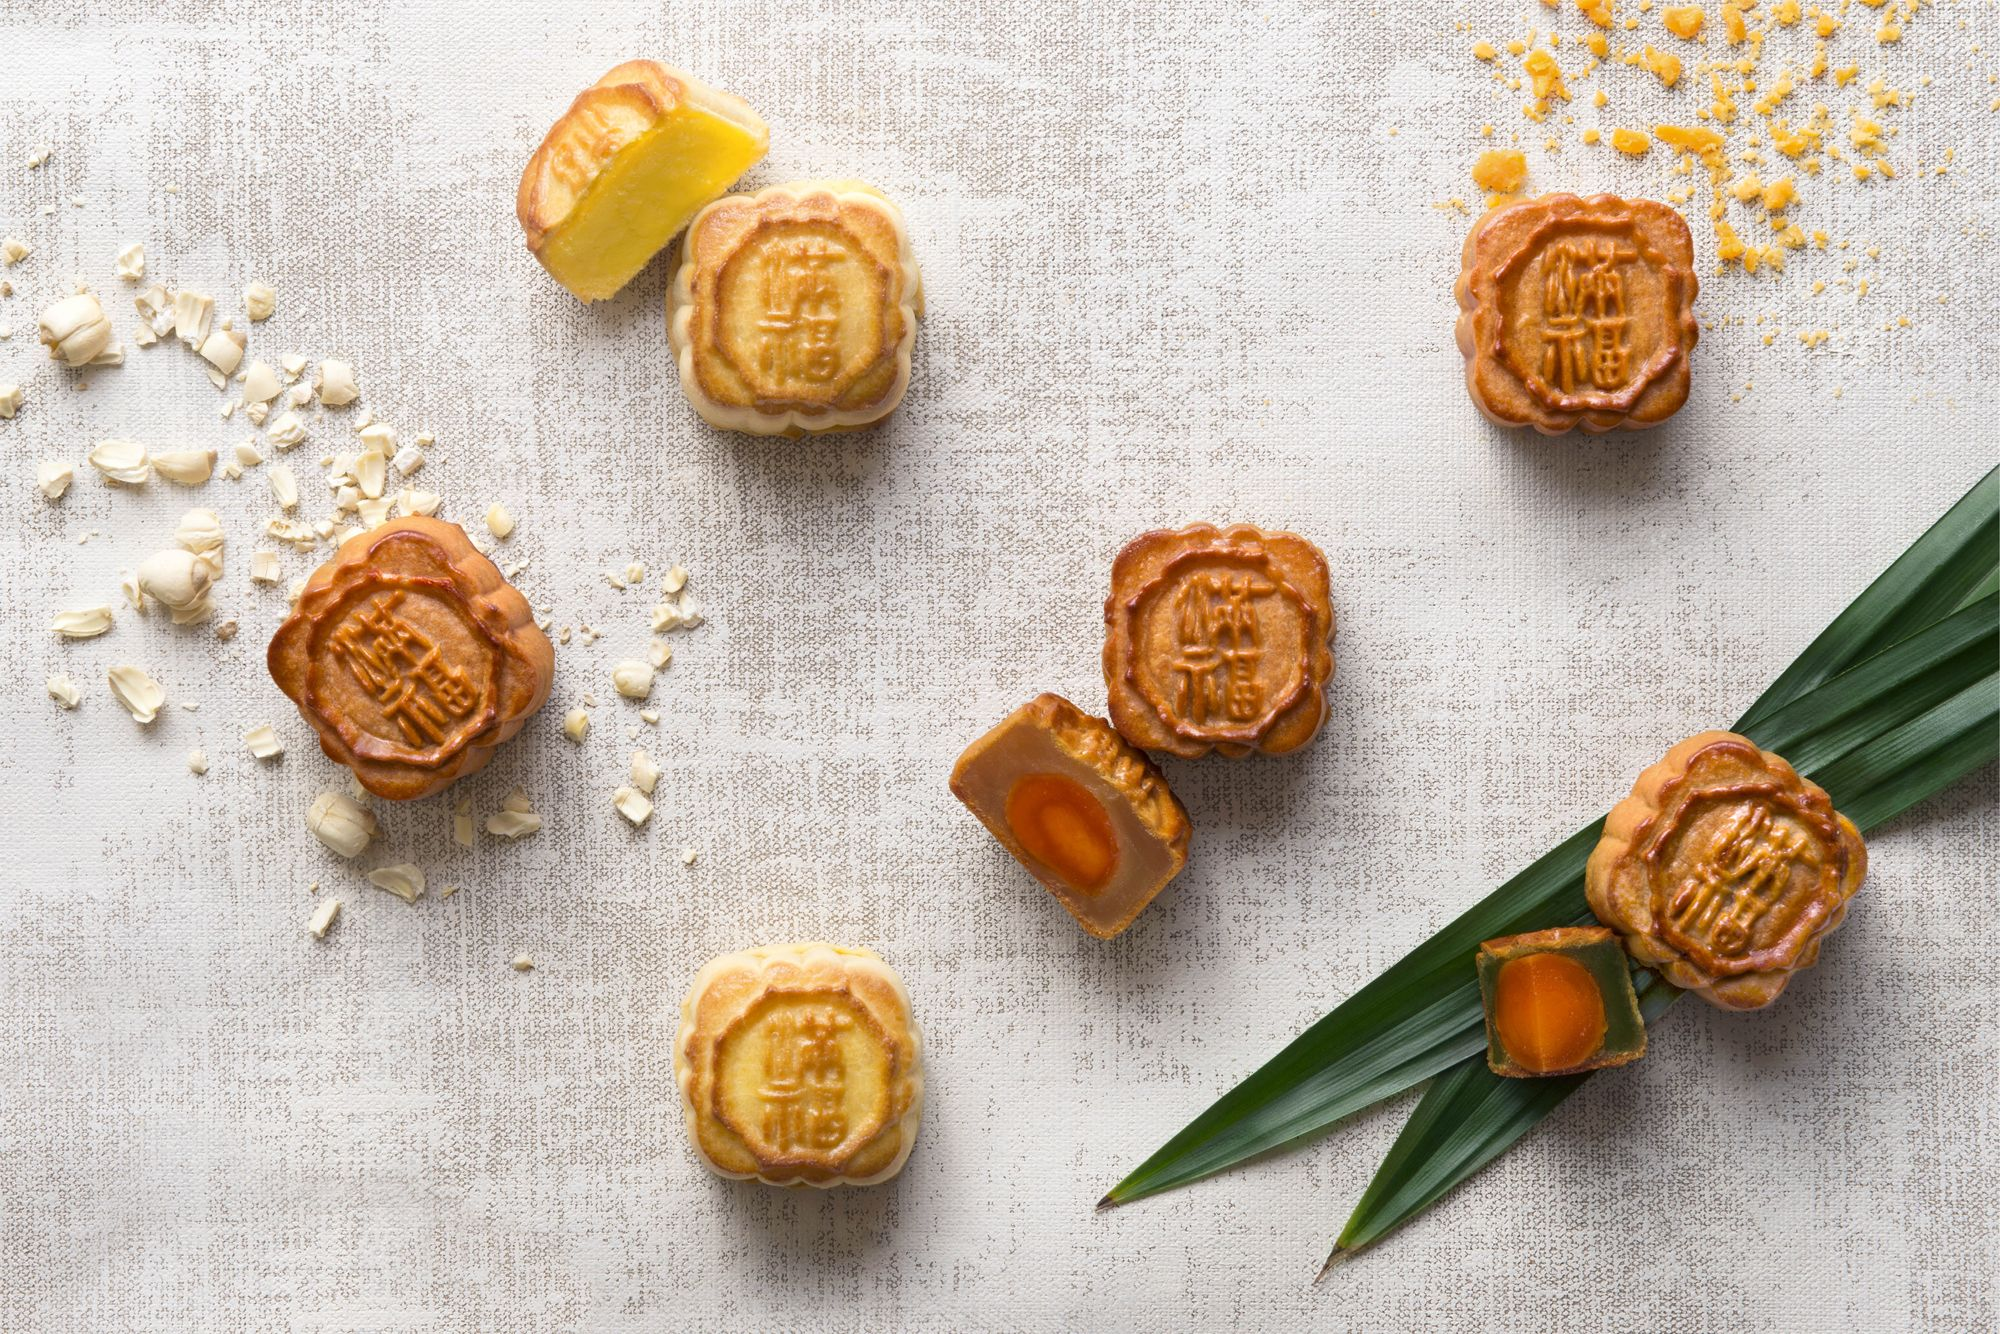 Savour Intriguing Dynasty Mooncakes To Celebrate The Mid-Autumn Festival